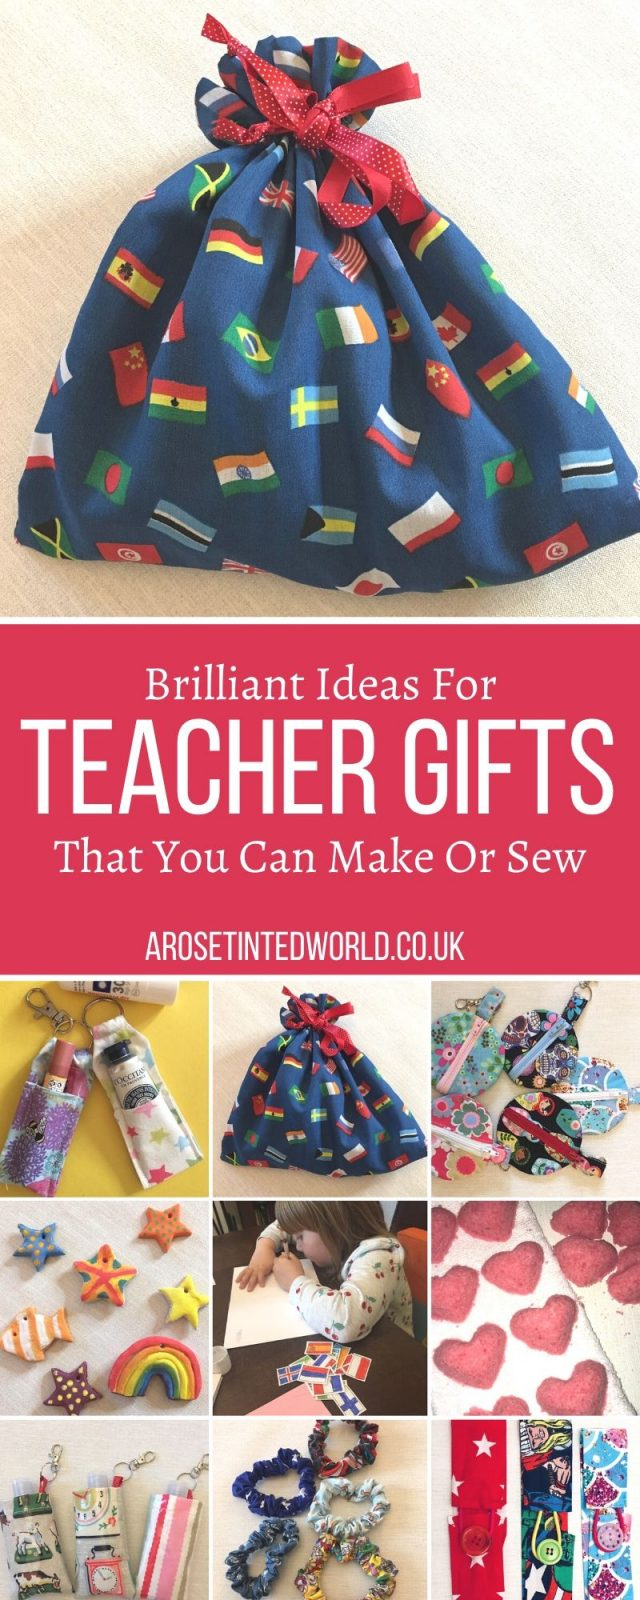 DIY Teacher Gifts - Homemade Teacher Appreciation Gift Ideas perfect for last minute presents for teachers. Money Saving Way To Say Thank You. Hand made Gifts That You Can Make Or Sew - some great ideas for money saving presents that you can make at home. Show some love to the special teacher in your life with this gift guide full of brilliant personalized ideas that they will go crazy for. Perfect for Teacher Appreciation Day, Teacher Appreciation week, Christmas, end of year and end of term.